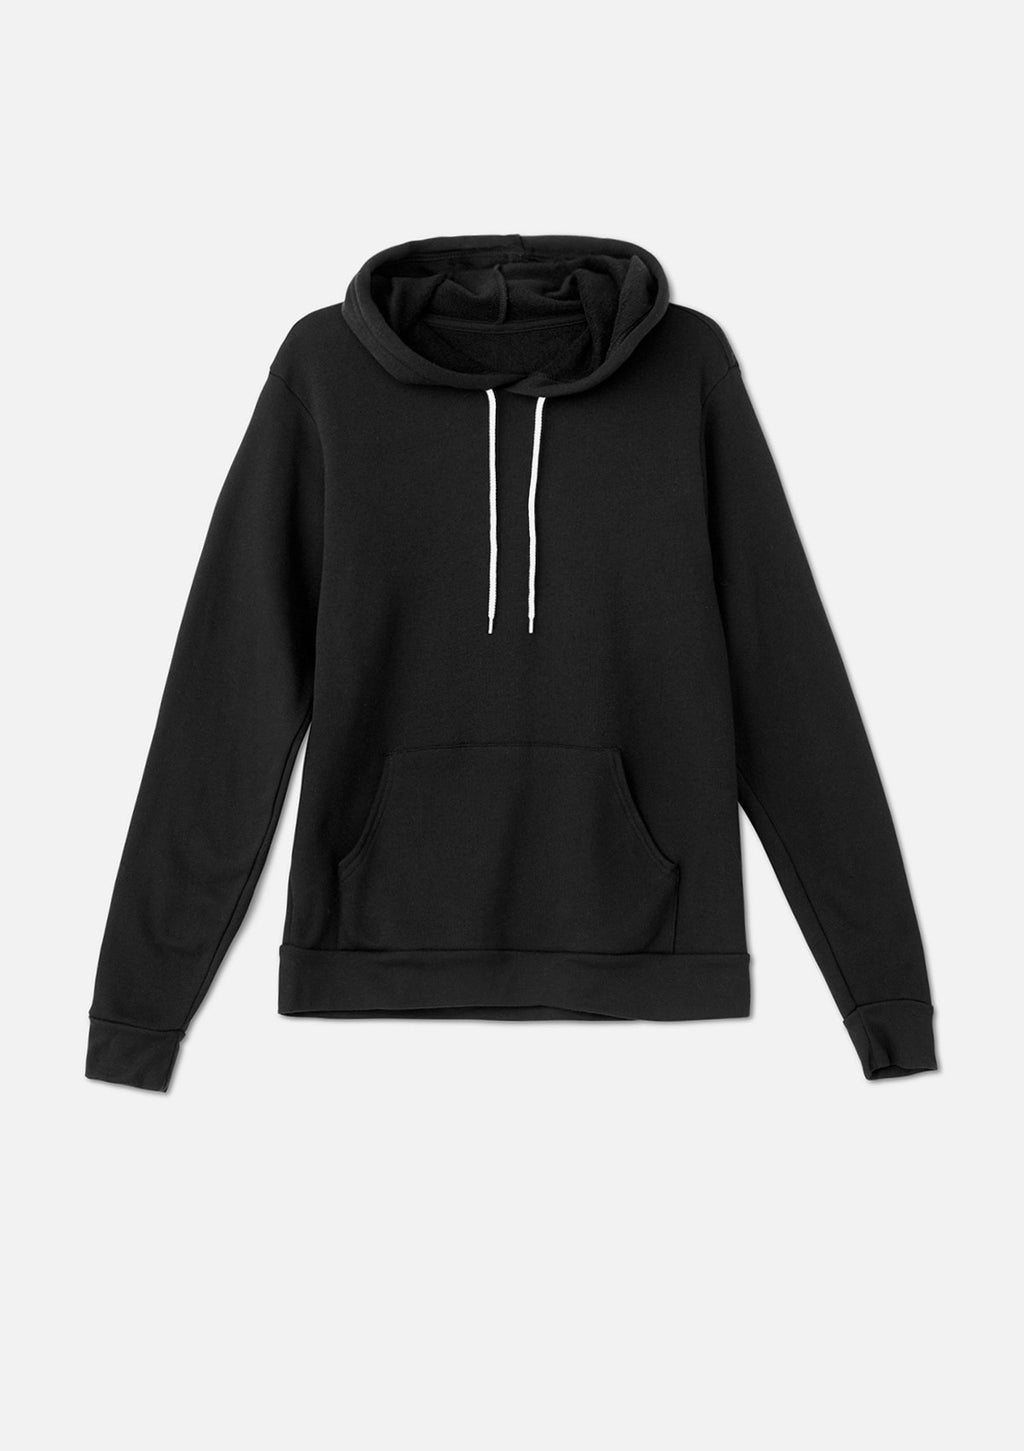 Black B/&C Mens Hooded Sweatshirt//Mens Sweatshirts /& Hoodies M